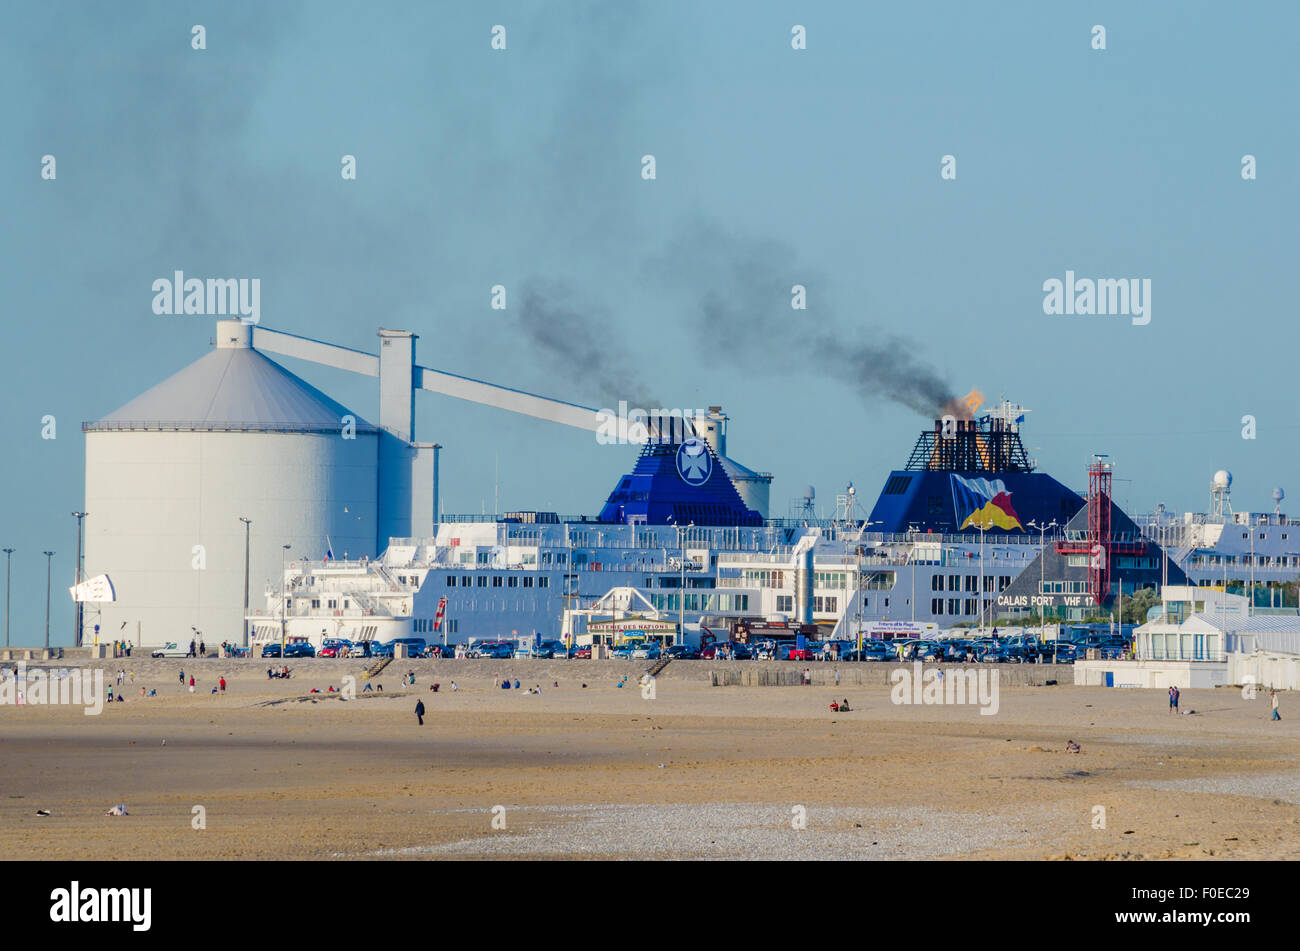 Calais harbour with channel ferries with the beach in the foreground. - Stock Image